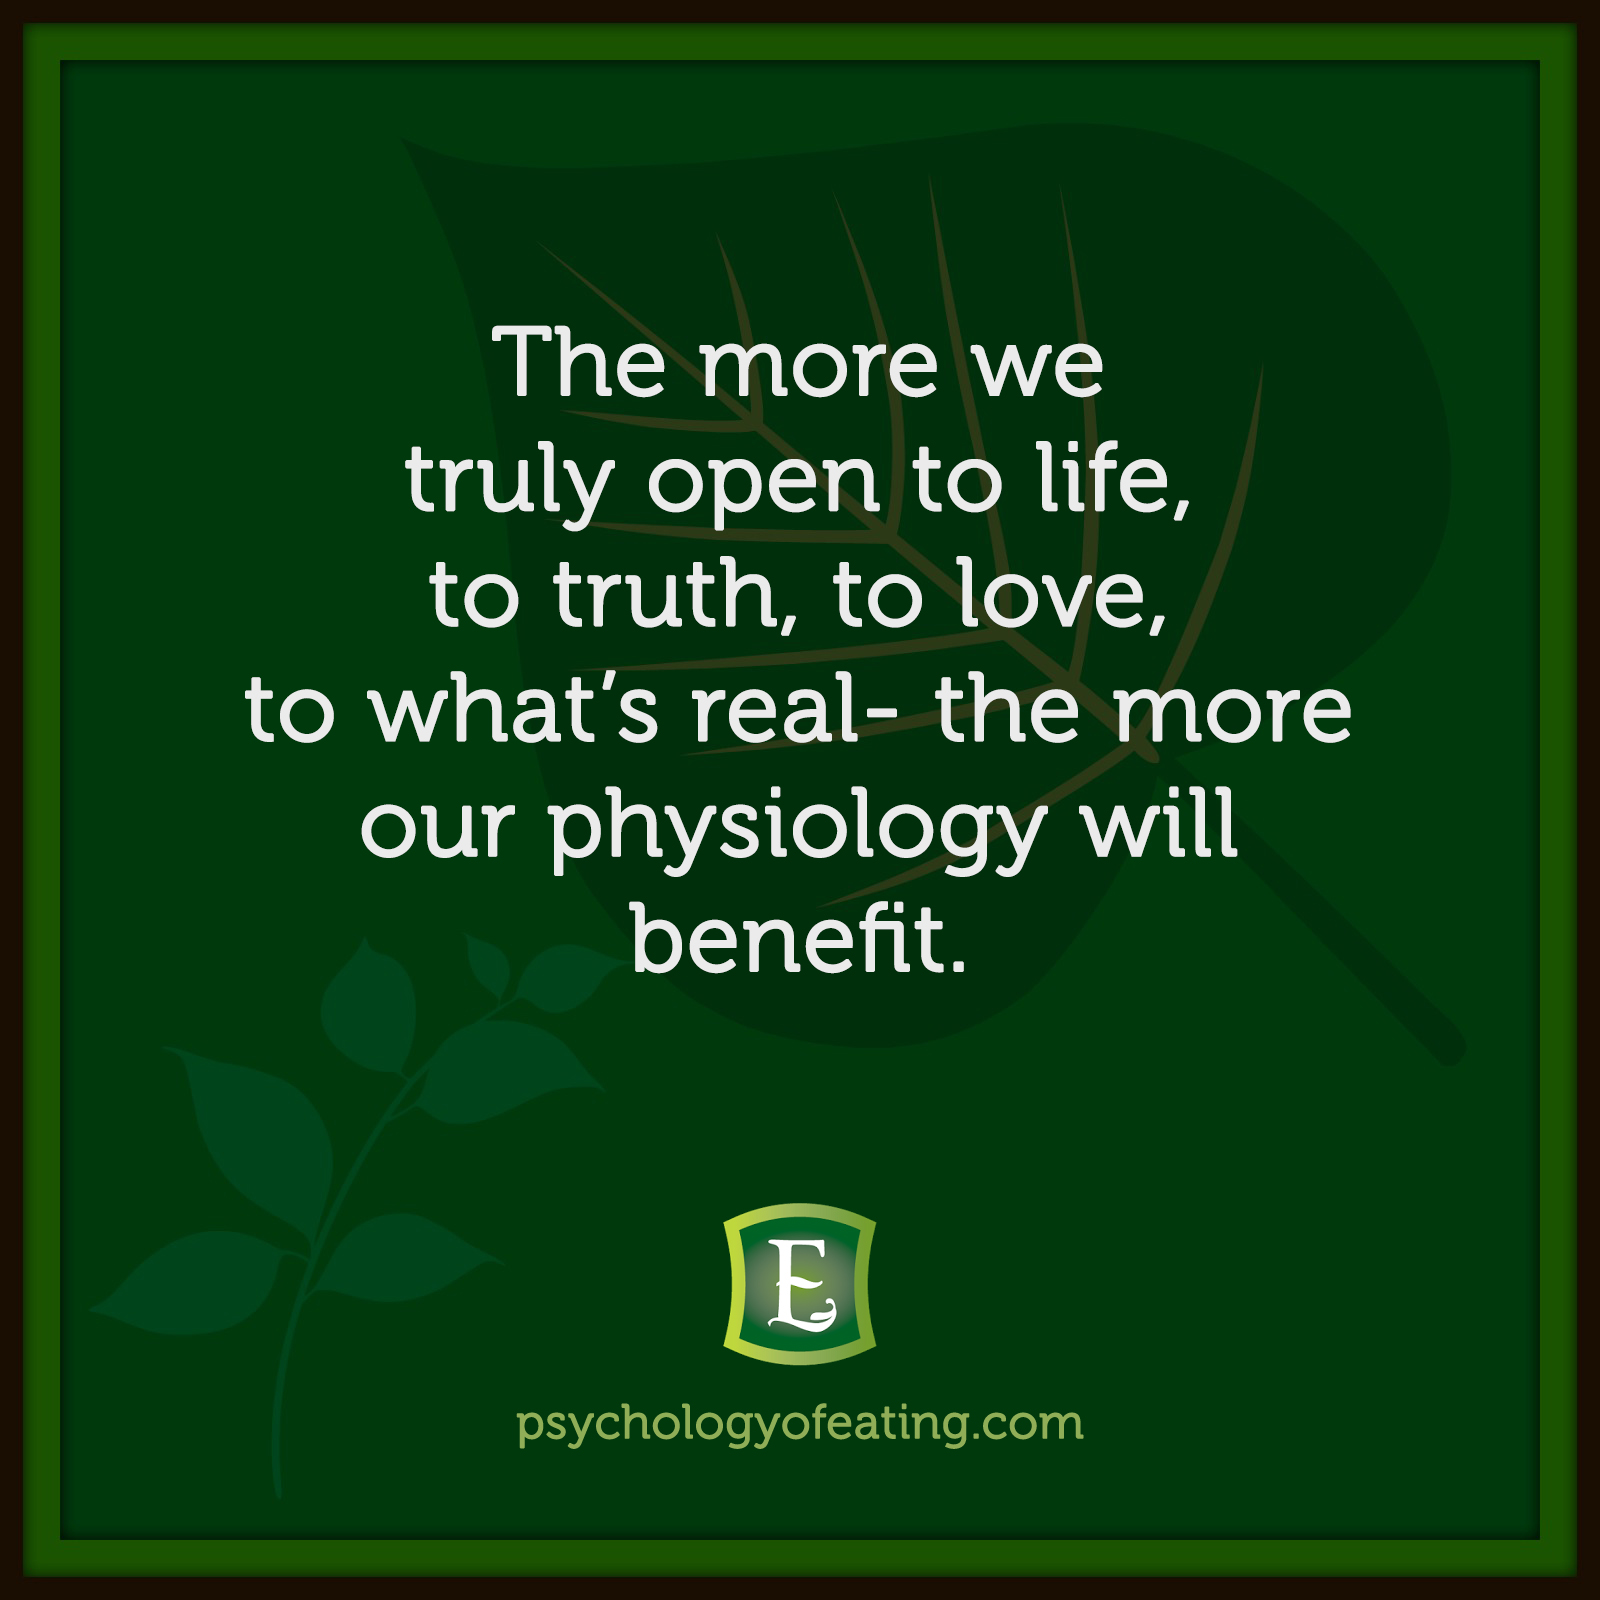 The more we truly open to life, to truth, to love, to what's real – the more our physiology will benefit. #health #nutrition #eatingpsychology #IPE